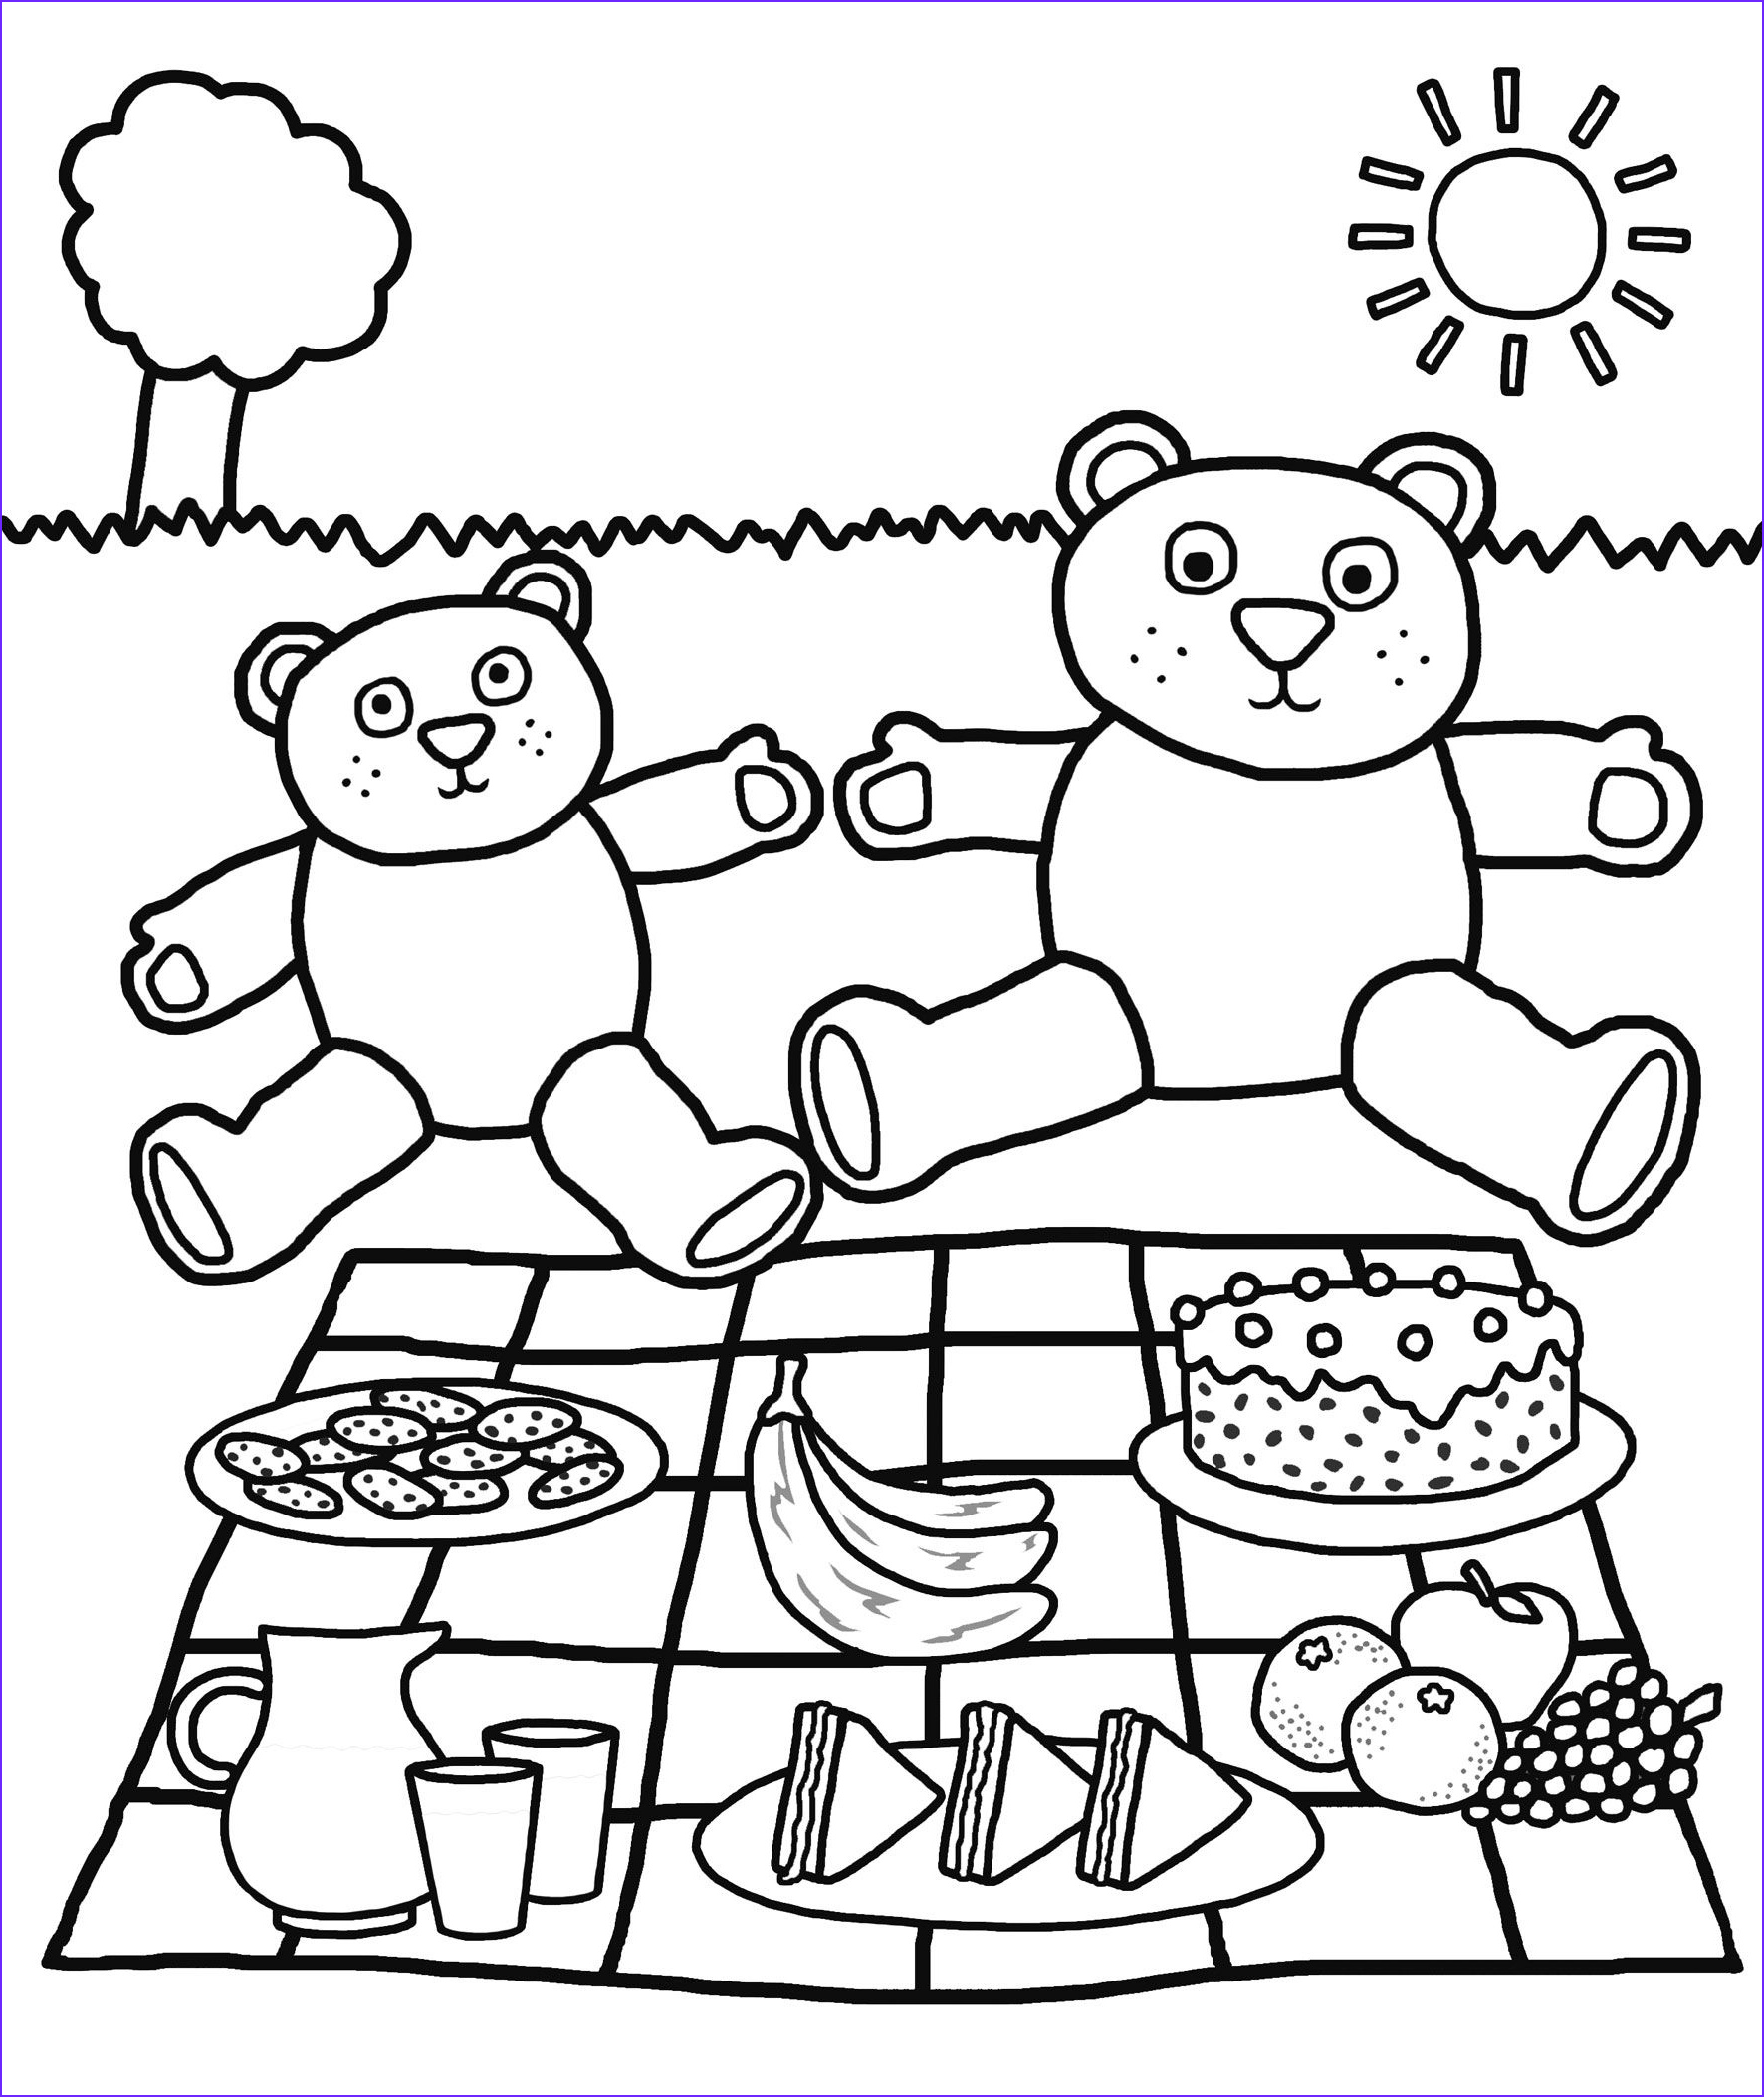 Picnic Coloring Sheet Inspirational Stock July 10 is National Teddy Bear Picnic Day Enjoy This Fun